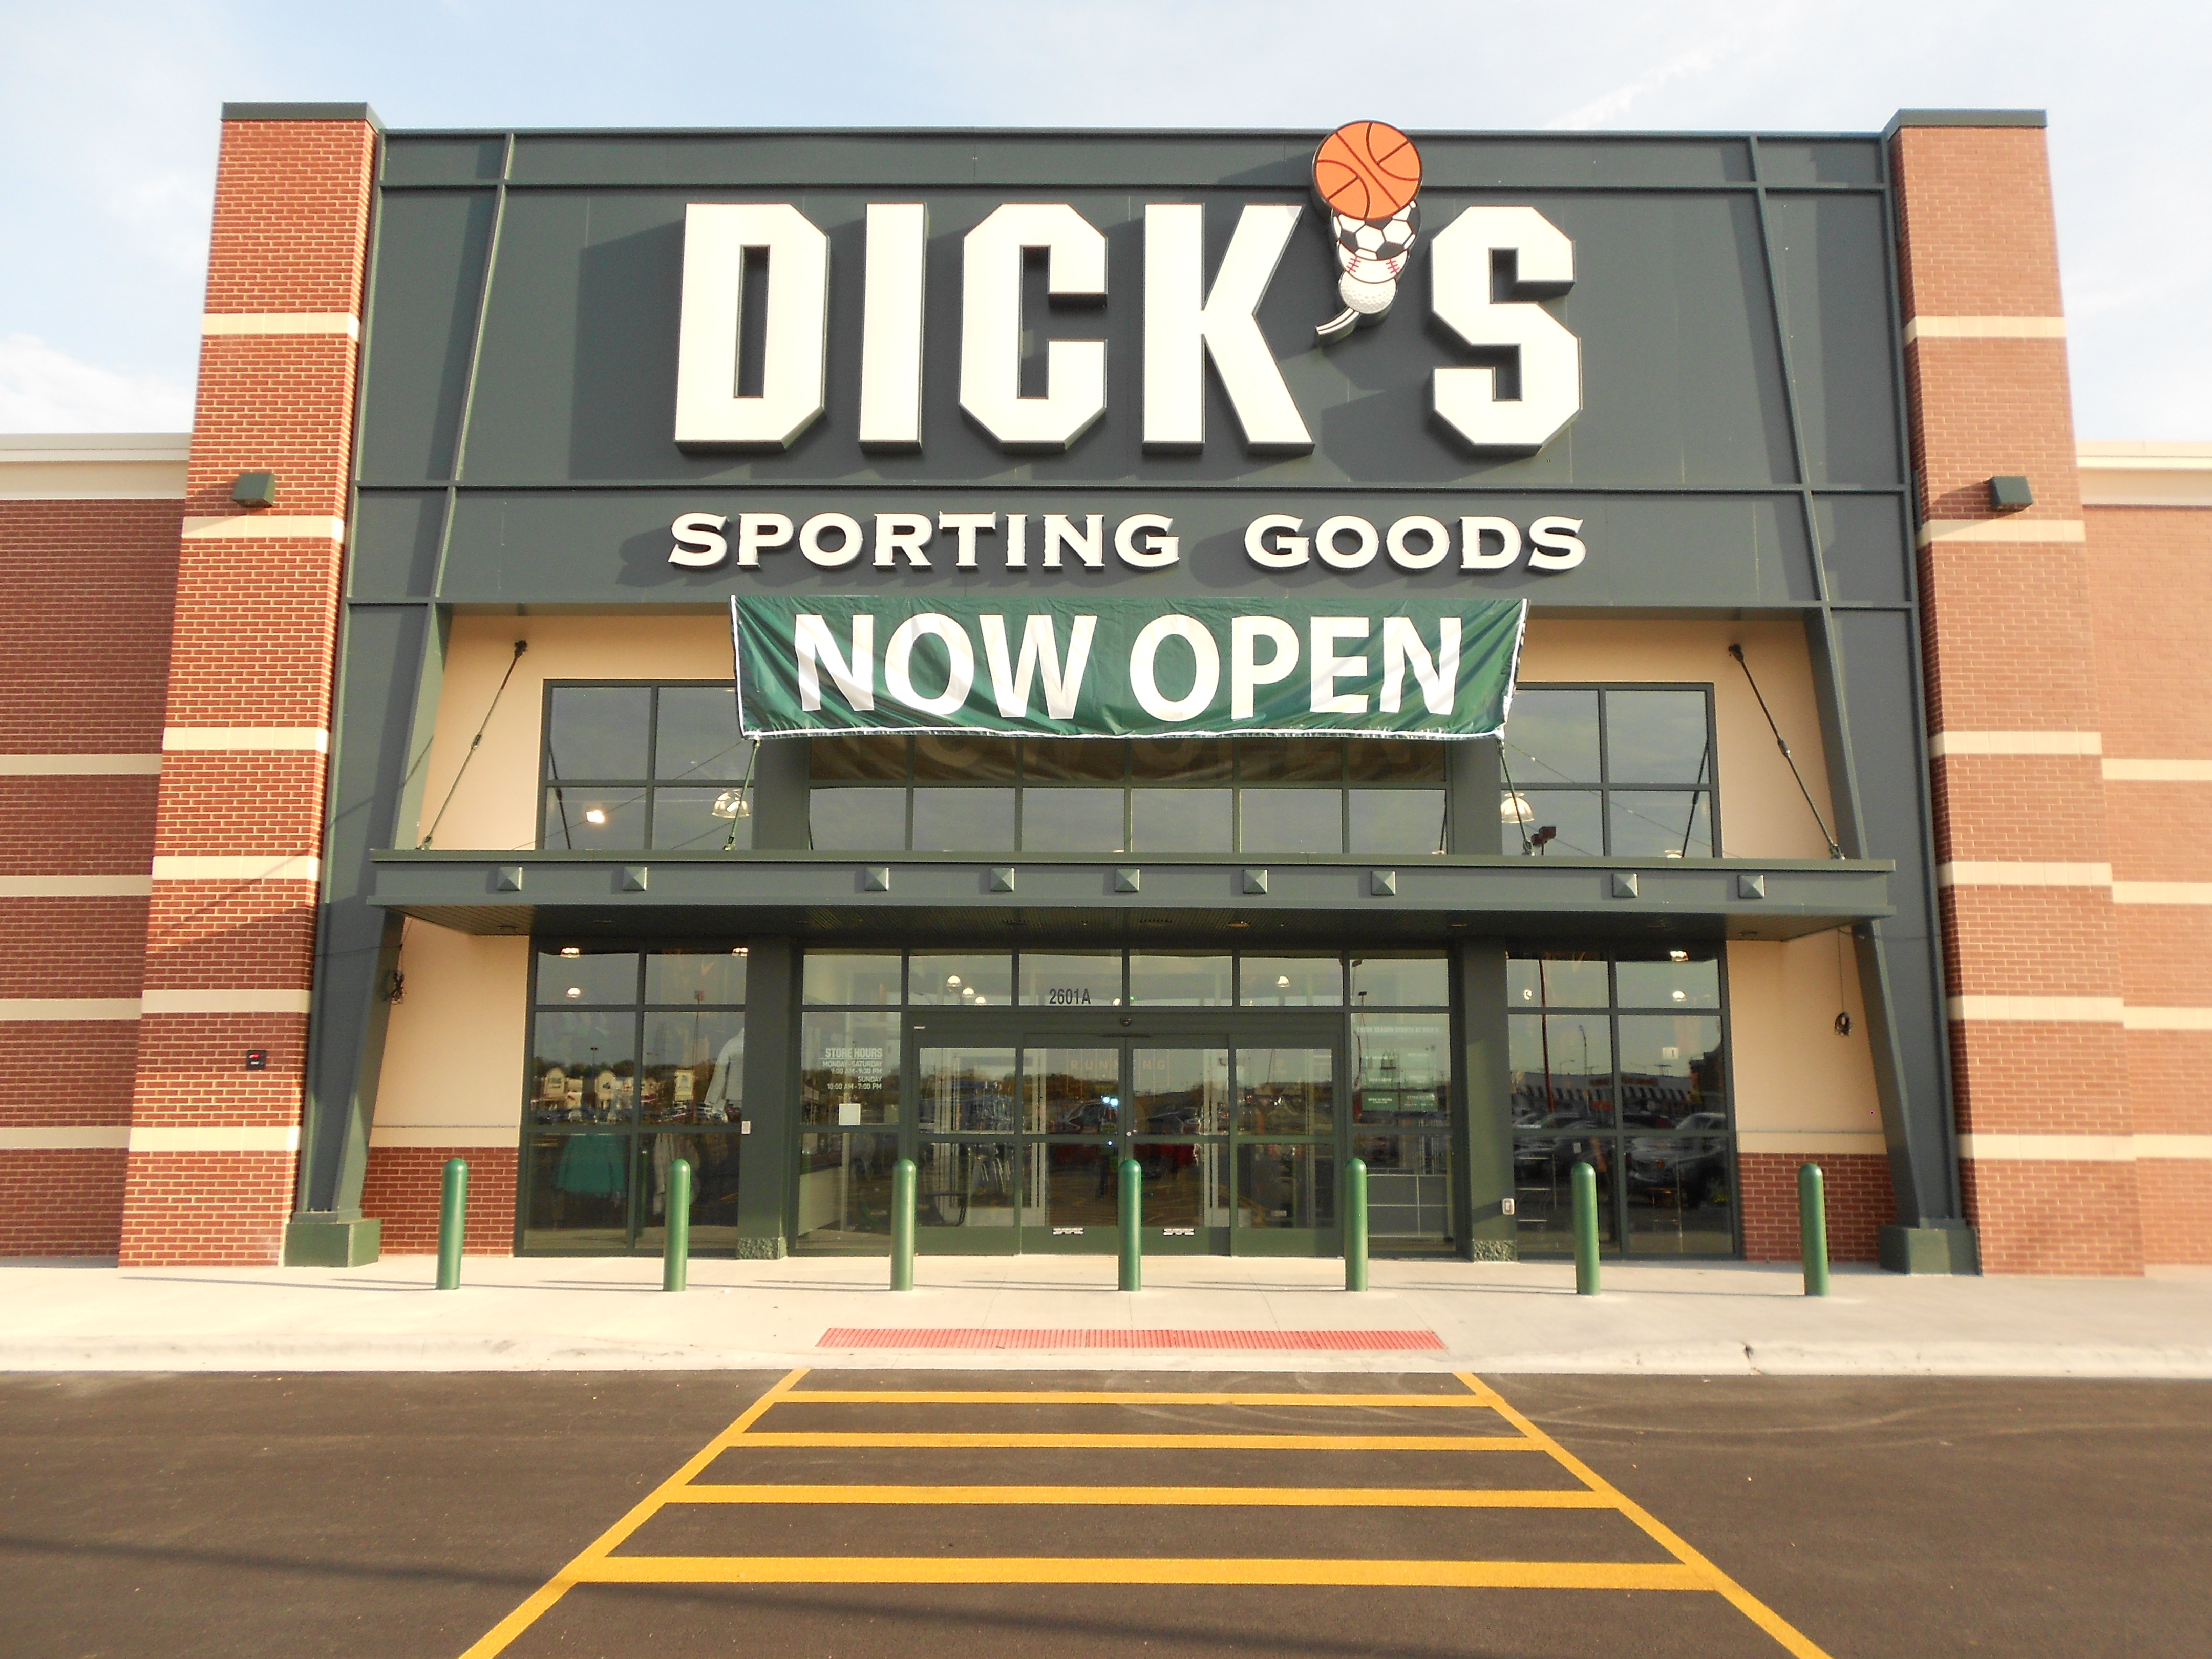 Store front of DICK'S Sporting Goods store in Joliet, IL